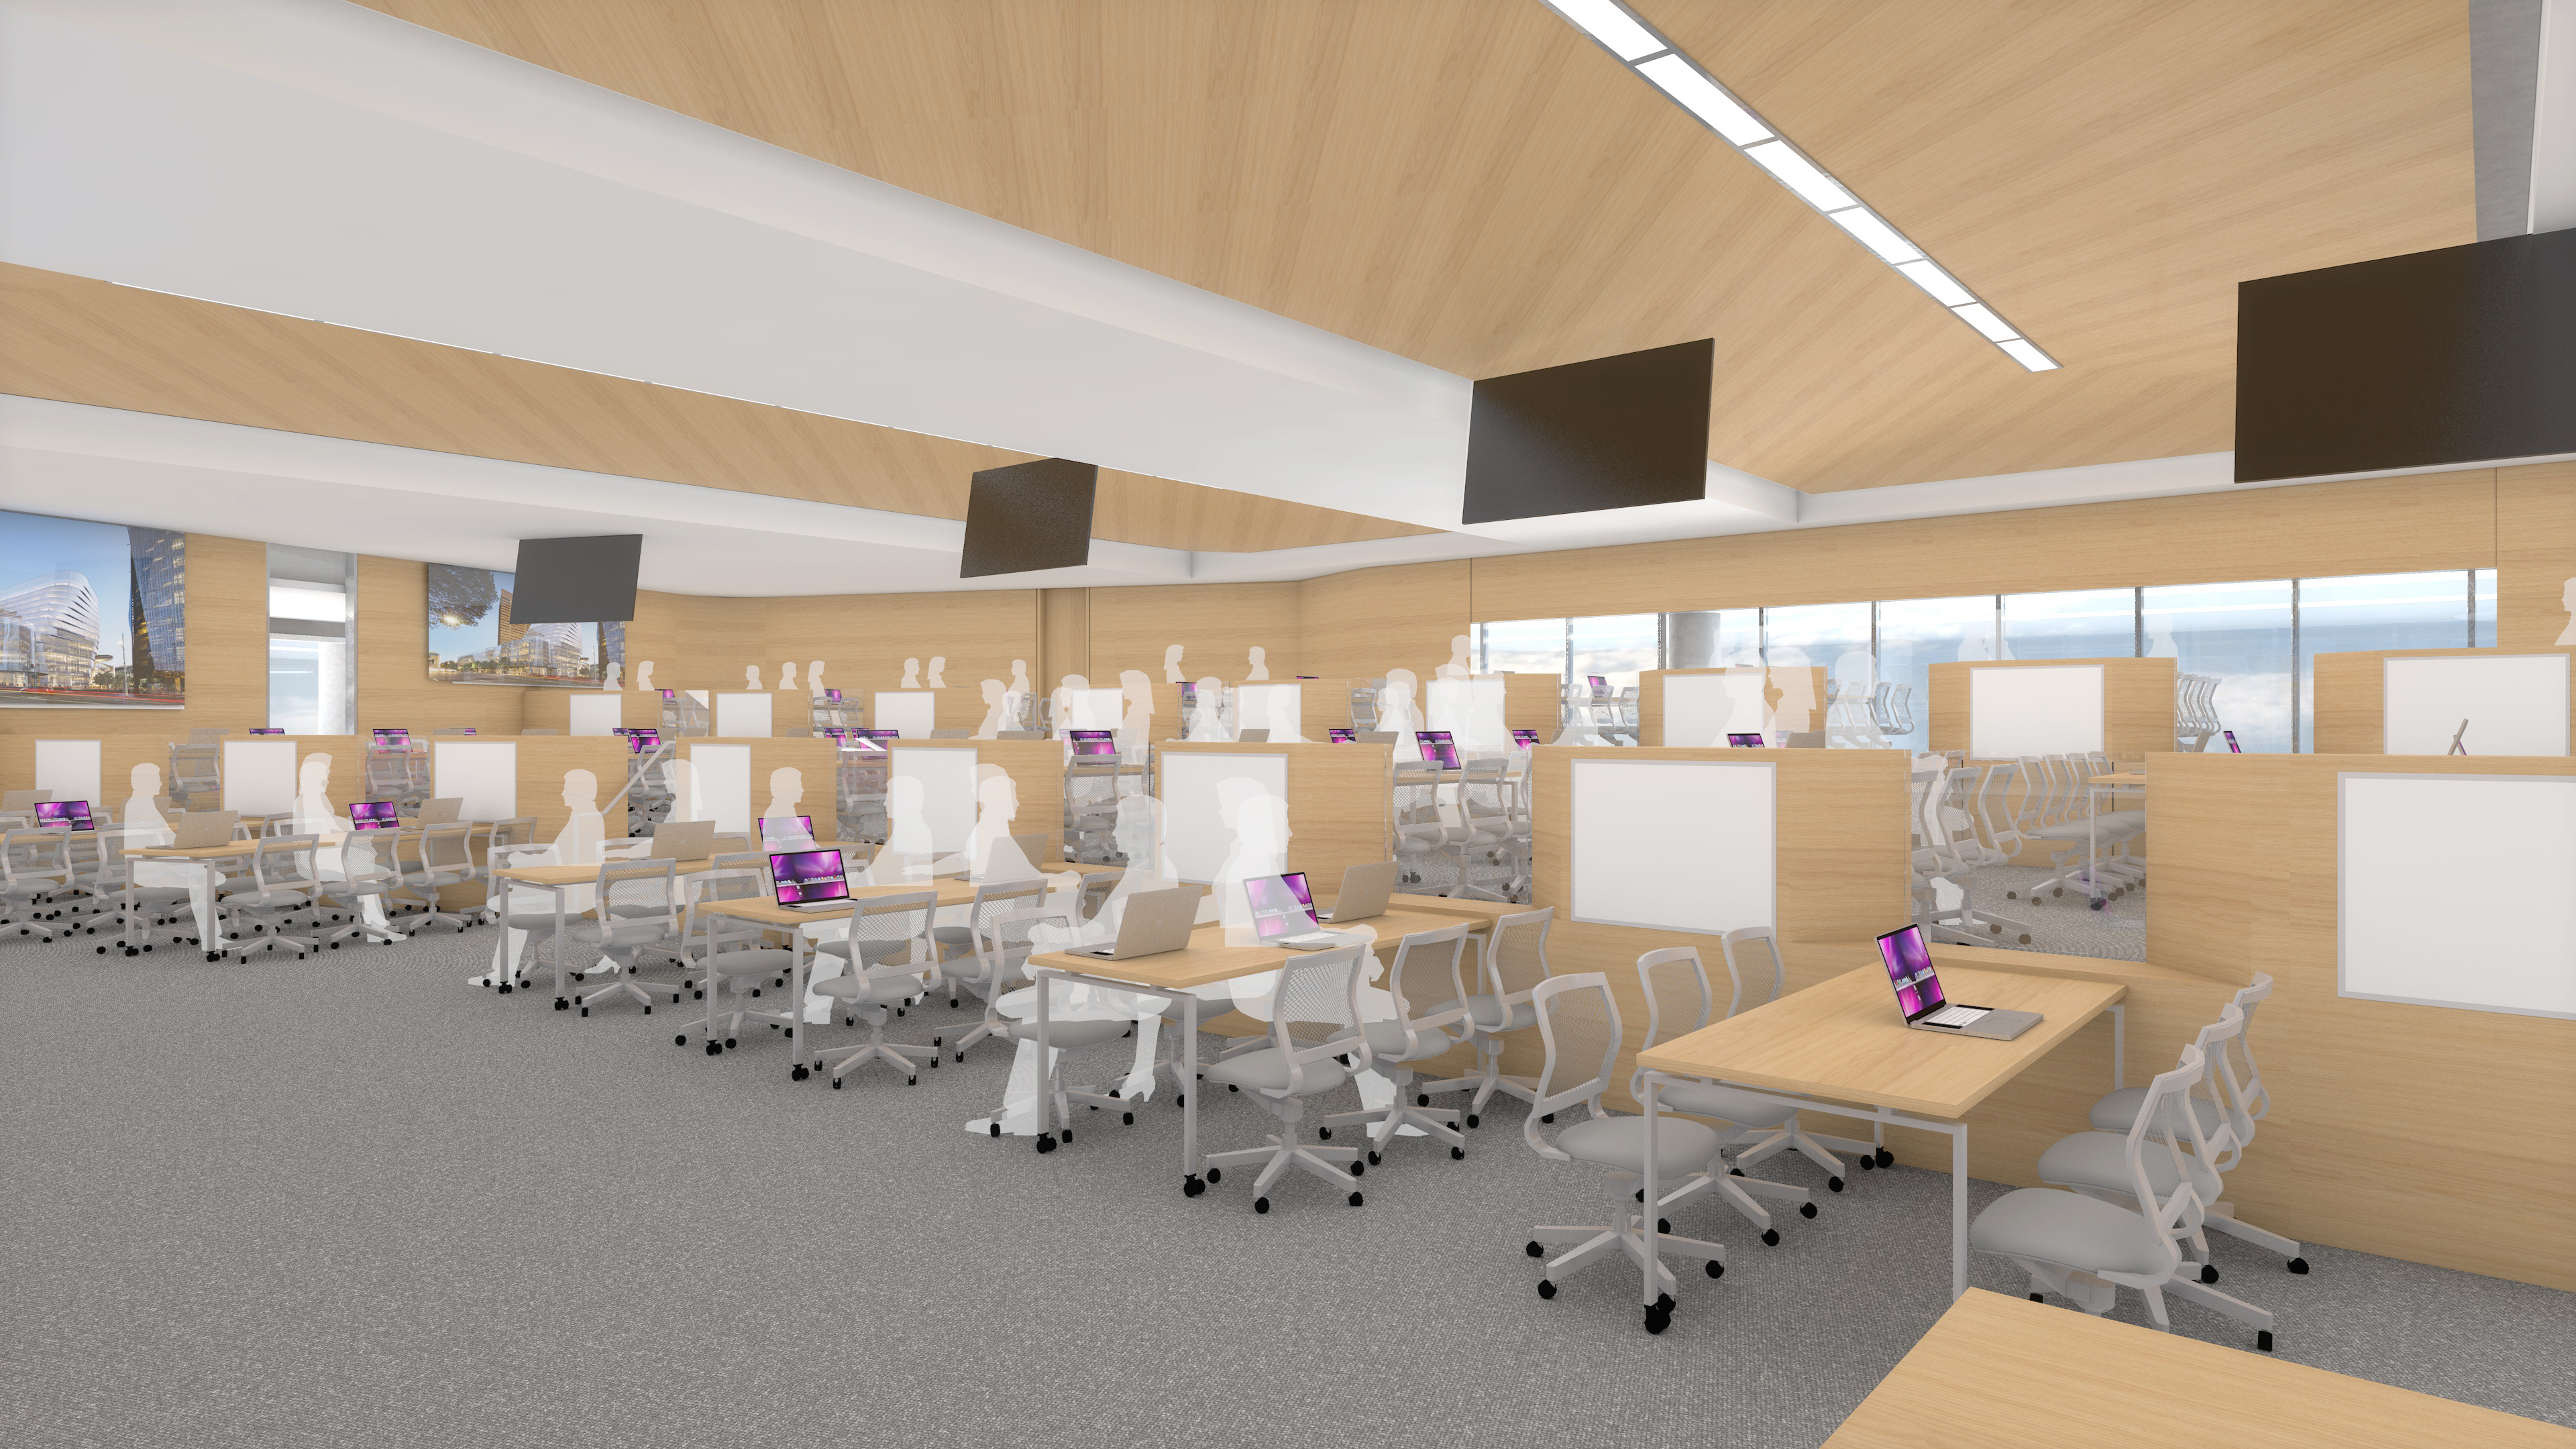 Want to be one of the first to teach in UTS Central's two new large collaborative spaces?